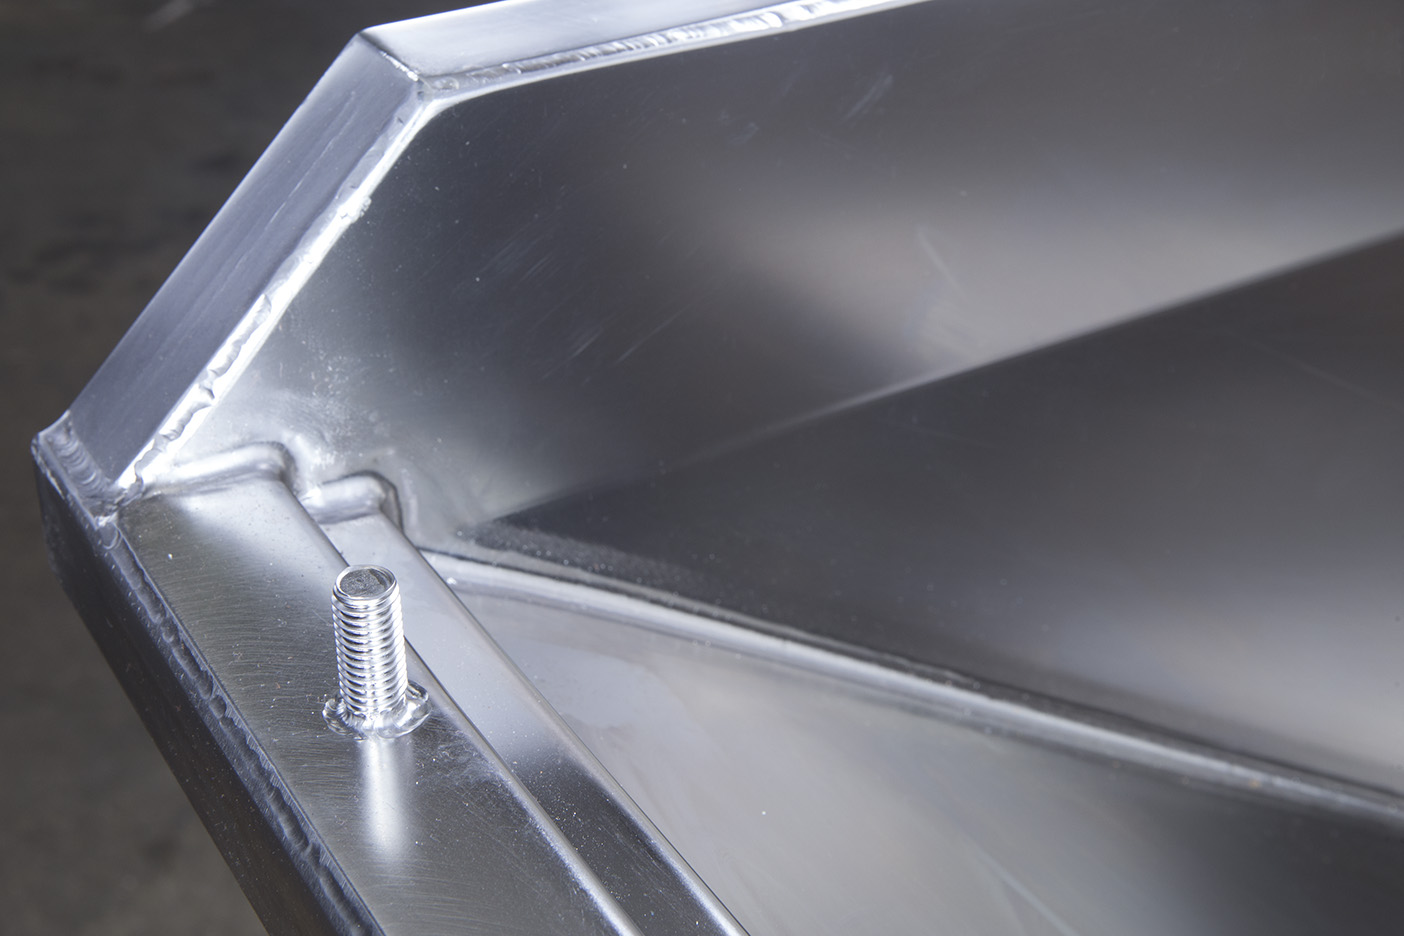 Difficult angles welded on pharmaceutical manufacturing equipment